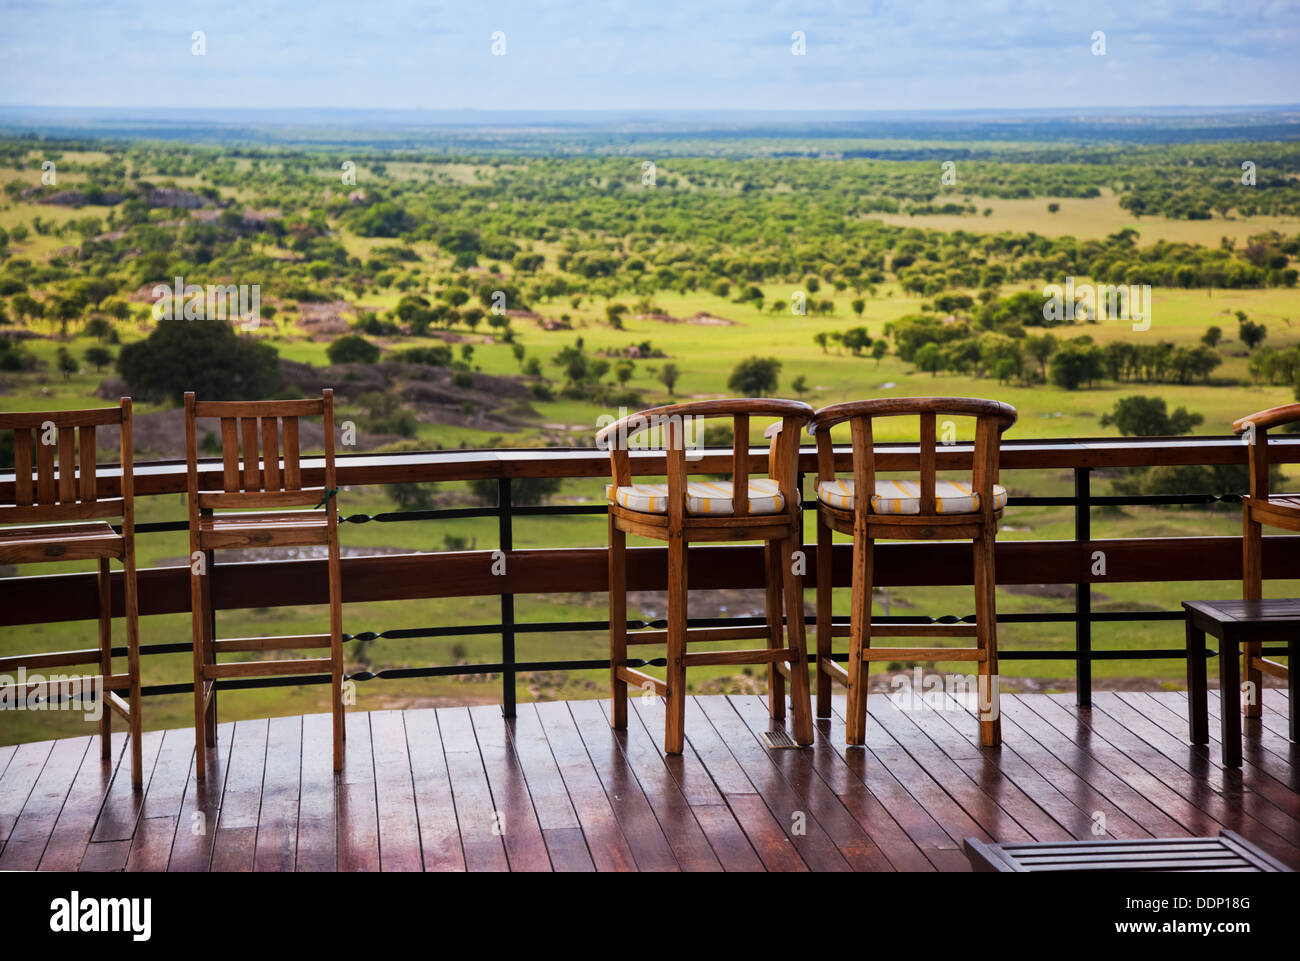 Serengeti, Tanzania, Africa. Chairs on the terrace of a lodge overlooking the plains - Stock Image